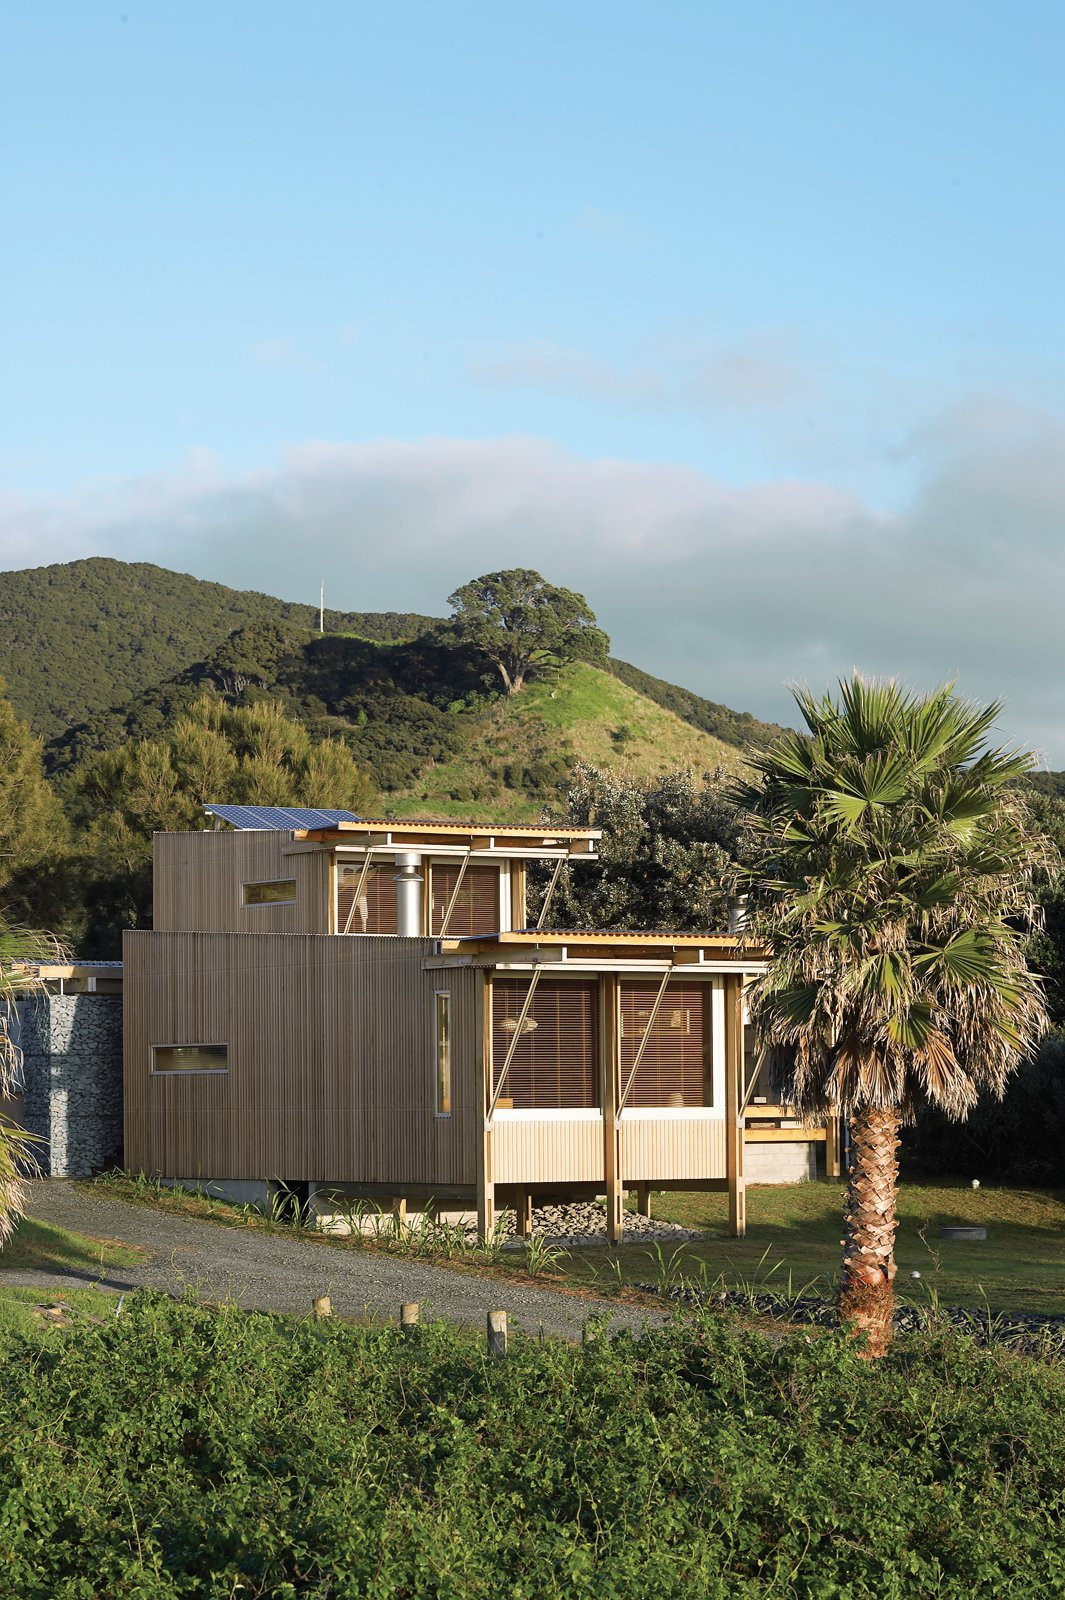 Exterior, House Building Type, Wood Siding Material, and Flat RoofLine The cedar-clad home designed by Herbst Architects faces the Pacific Ocean, tucked behind sand dunes from the sparsely populated Medlands Beach.  Best Photos from New Zealand Vacation Home Designed Completely Off the Grid